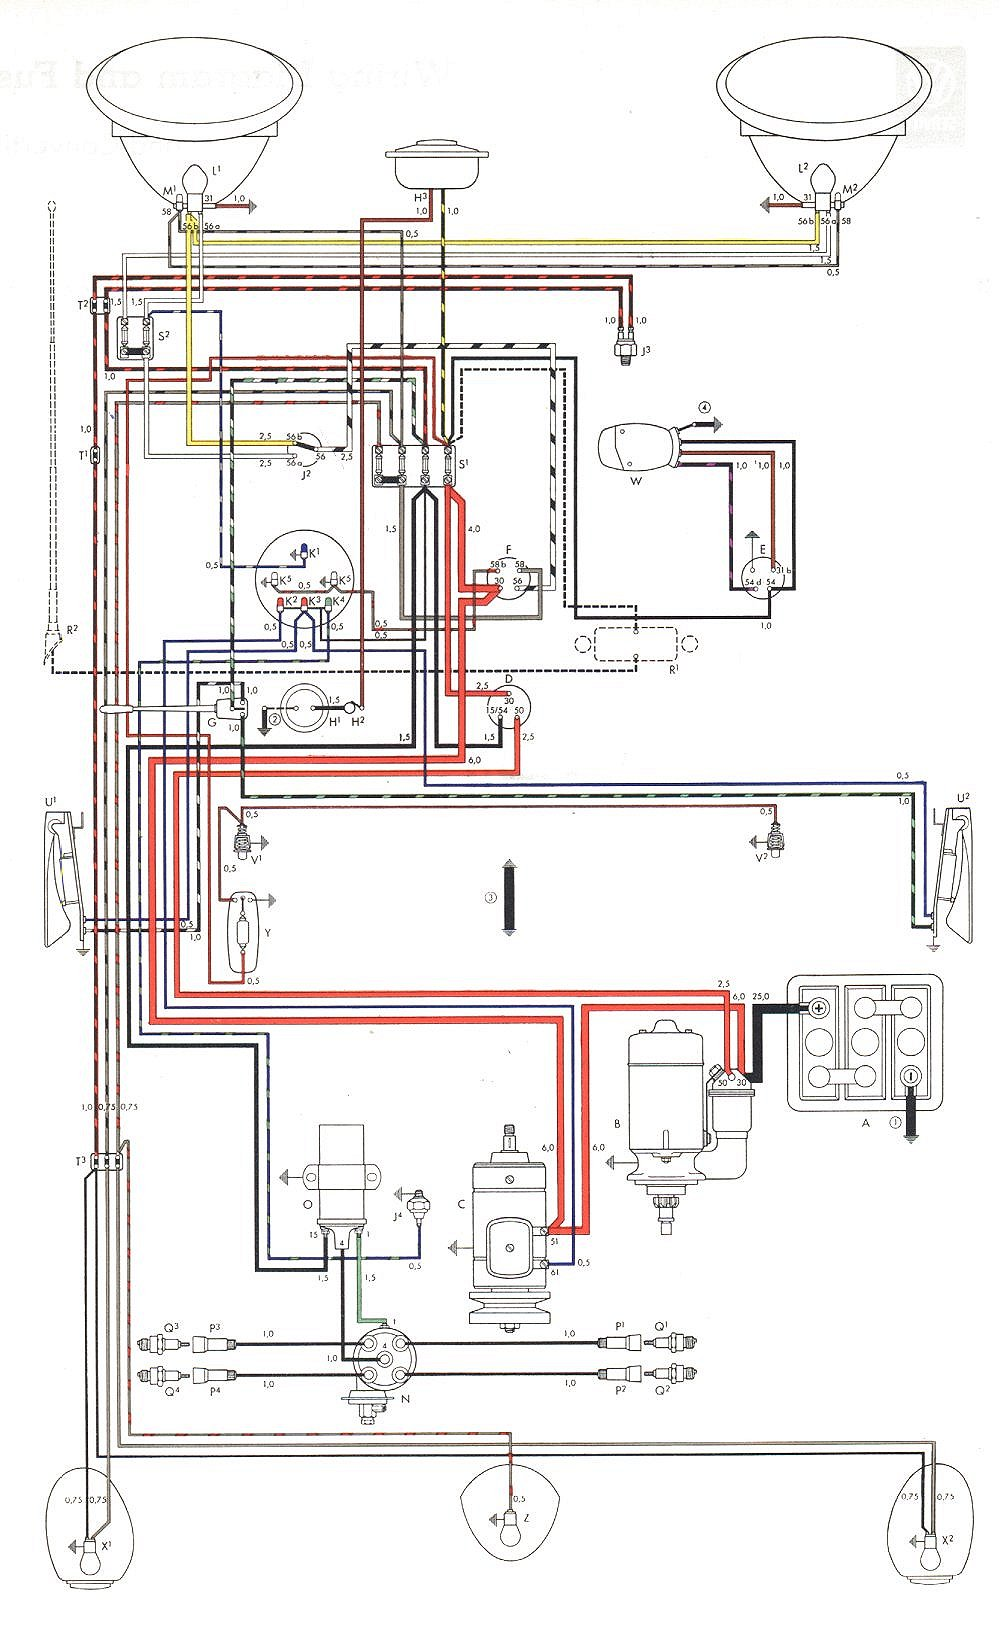 1968 Ford 2000 Wiring Harness Data Diagram Today Auto Electrical 2001 Ranger